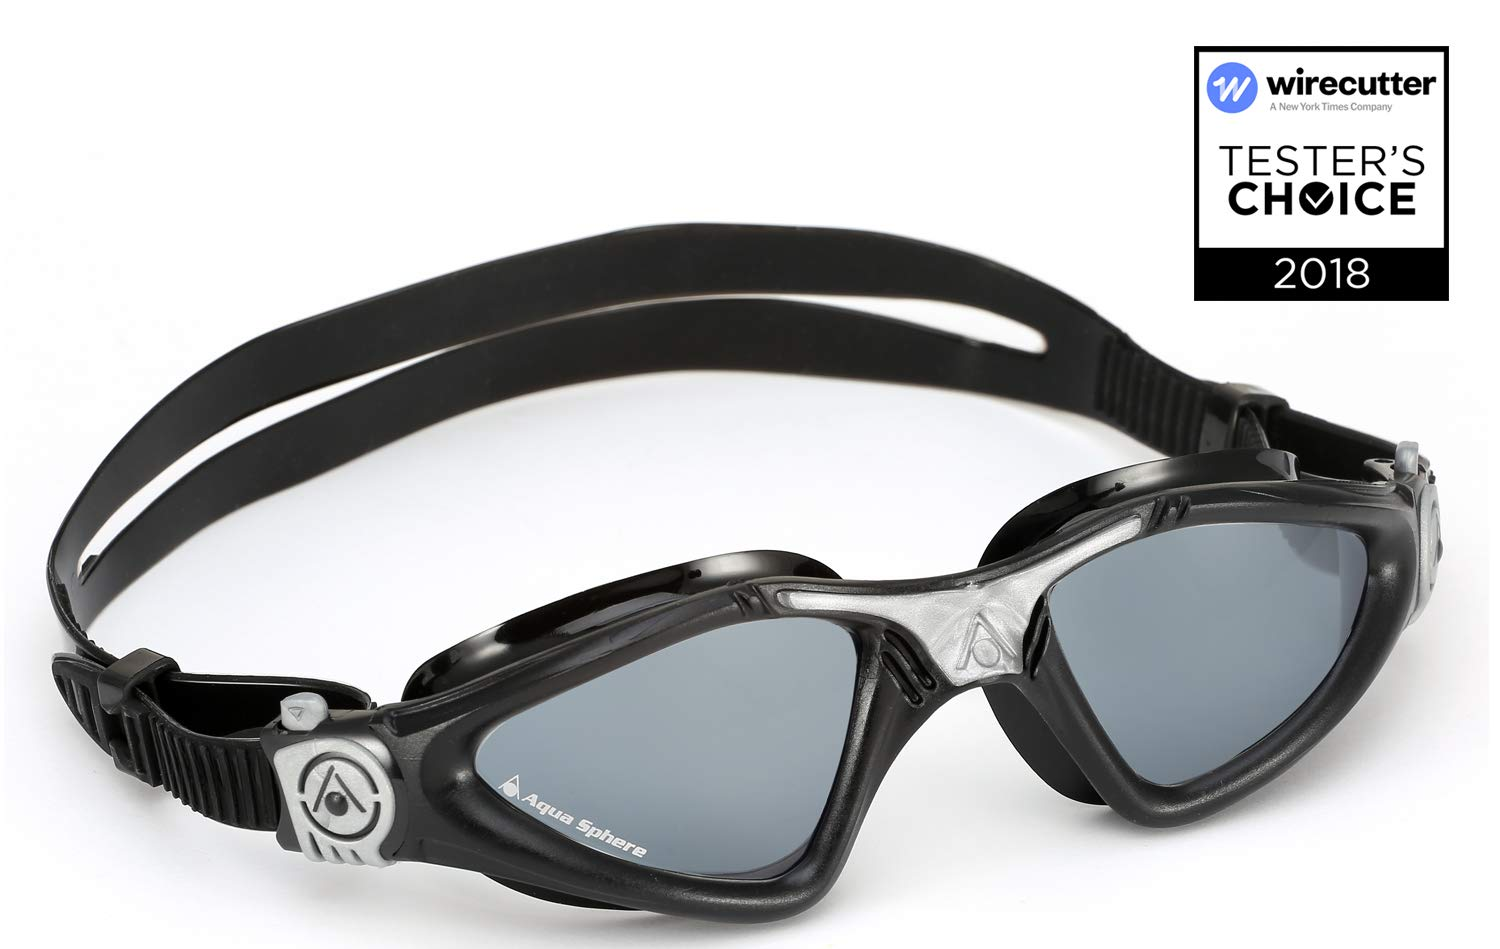 e4d7a8a5425 See all customer reviews · Aqua Sphere Kayenne Swim Goggles - Made in Italy  - Adult UV Protection Anti Fog Swimming